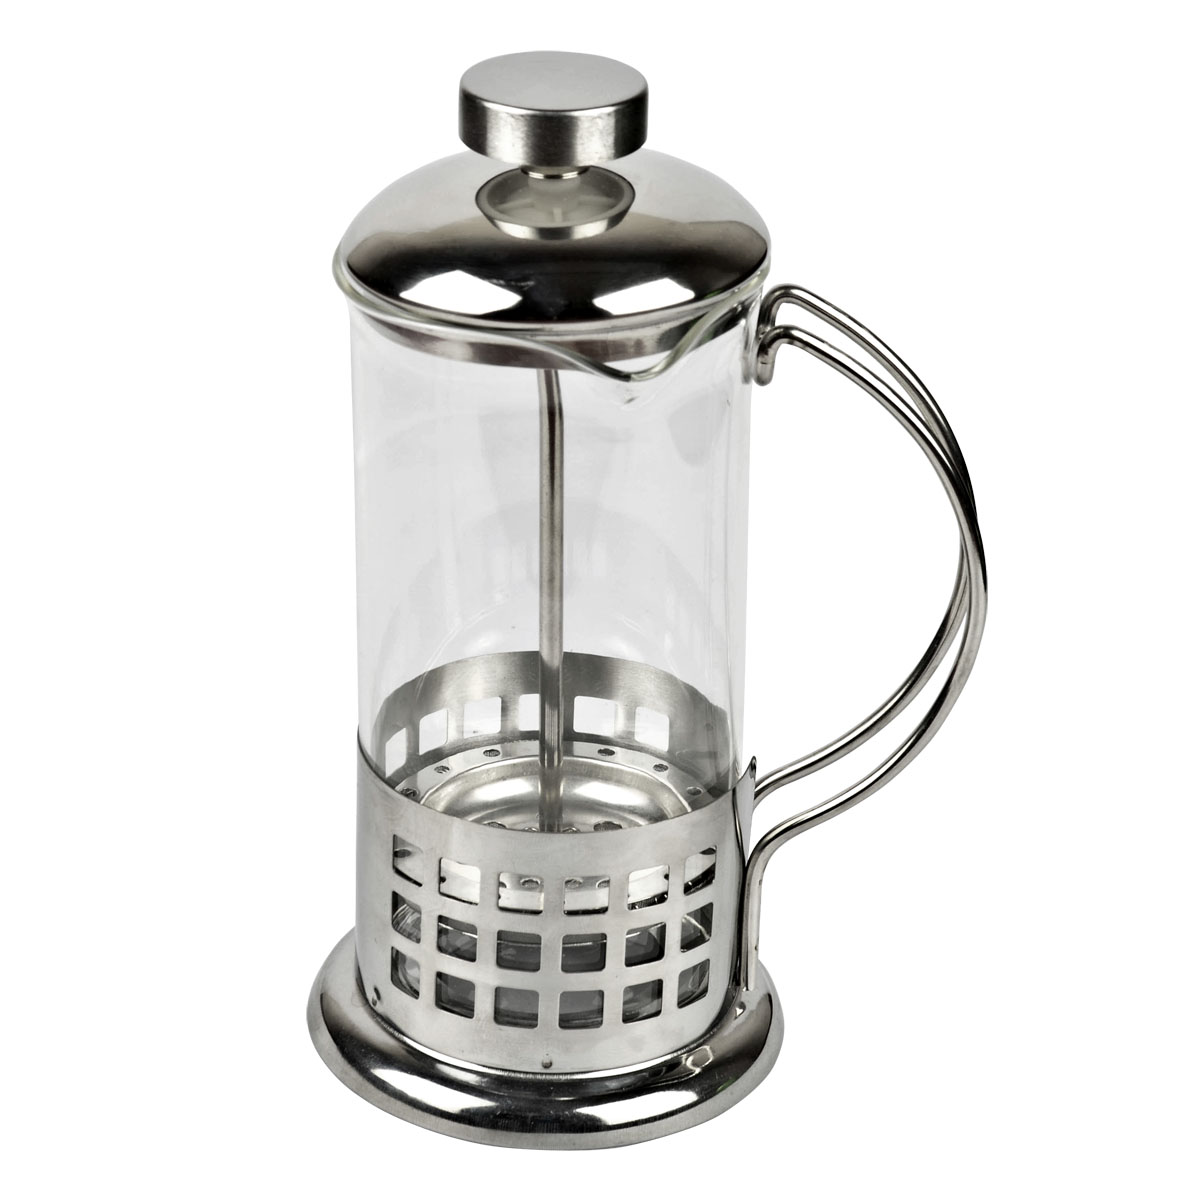 Stainless steel tea maker glass coffee pot french press coffee pot flower tea cup pressure pot ...